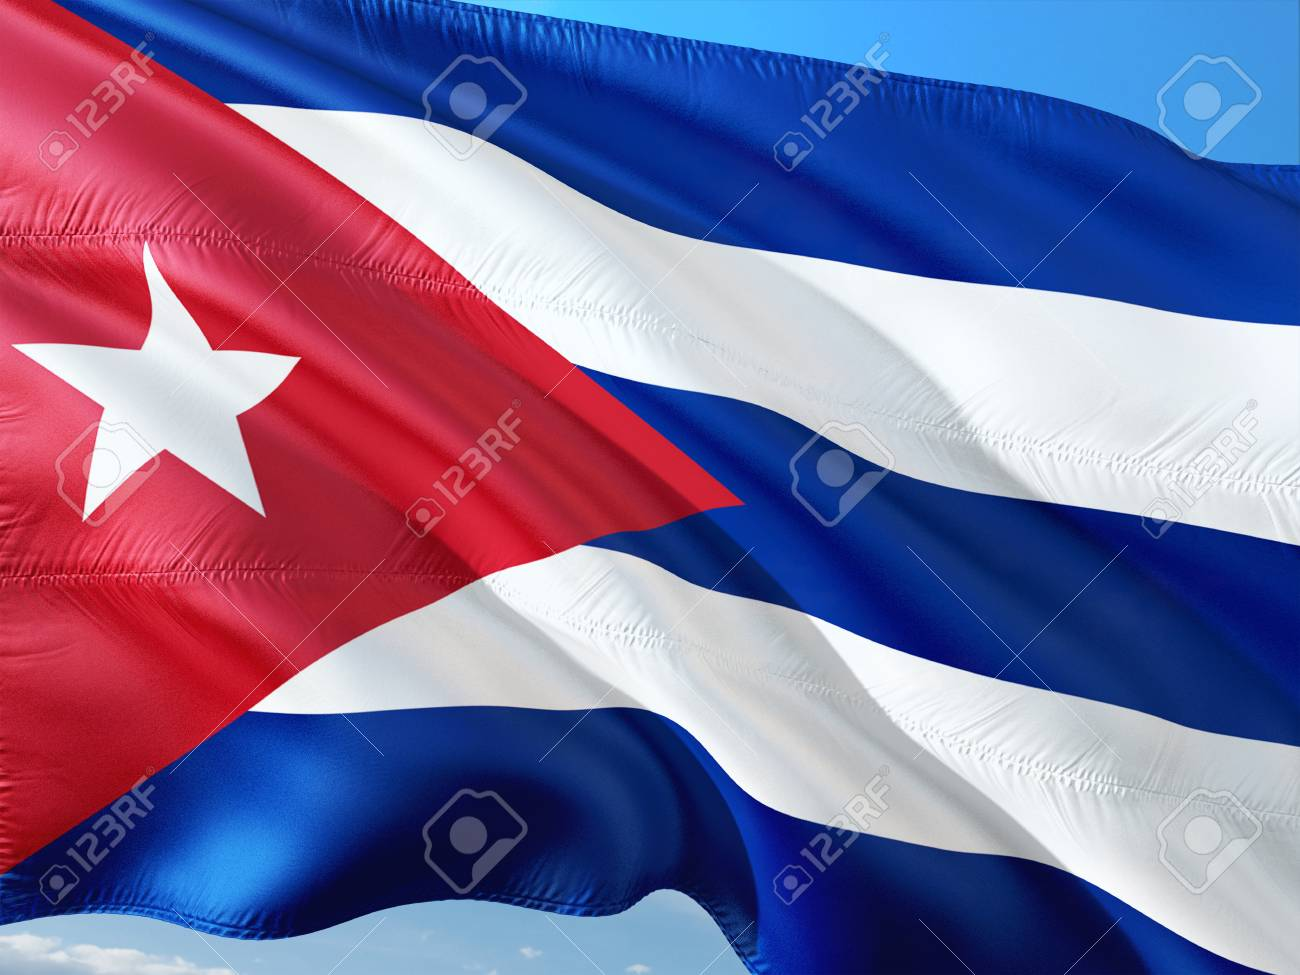 Flag of Cuba waving in the wind against deep blue sky. High quality fabric. - 114290734